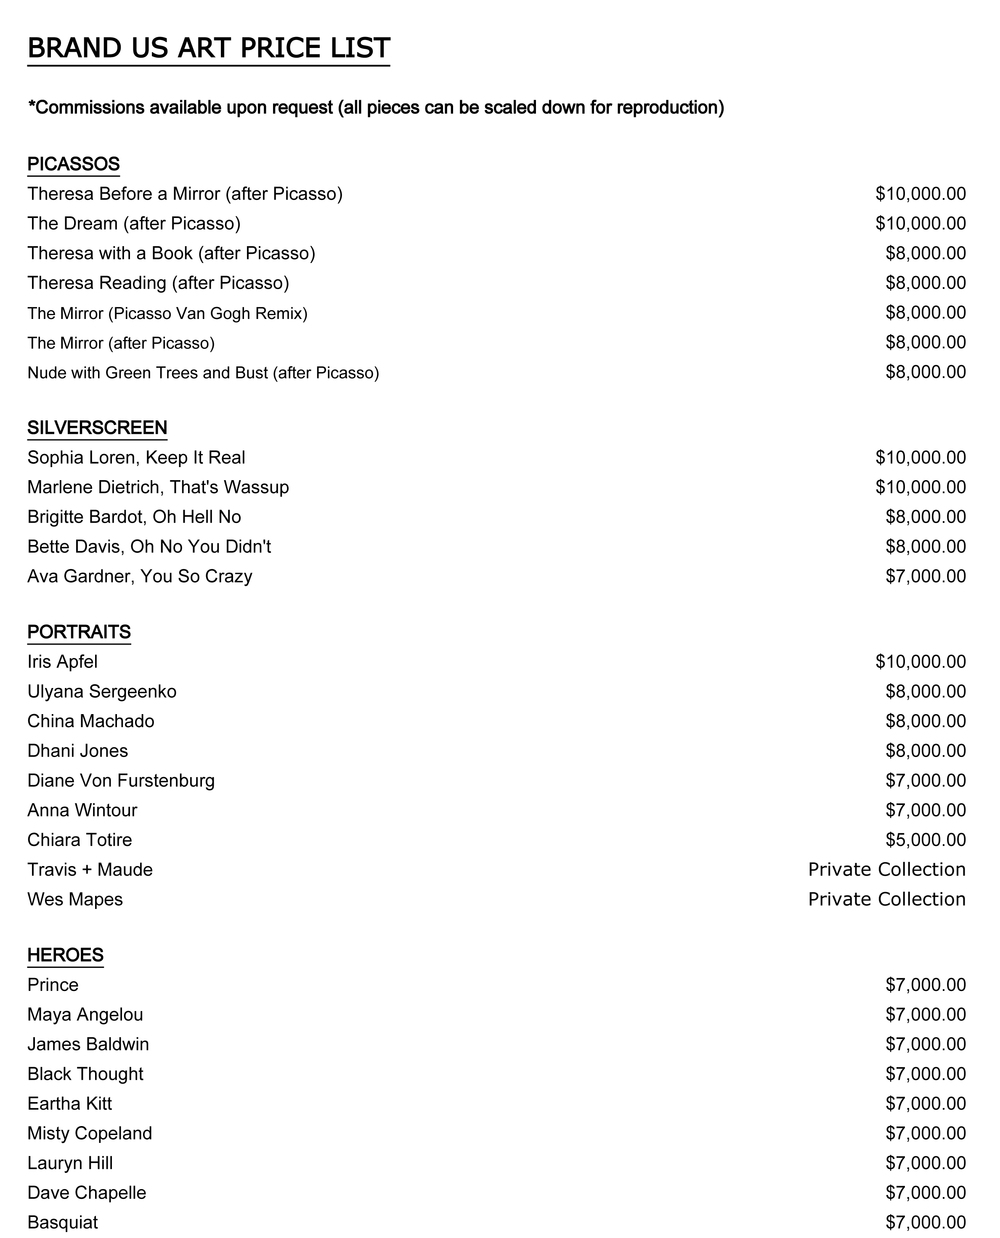 Brand Us Art Price List .jpg